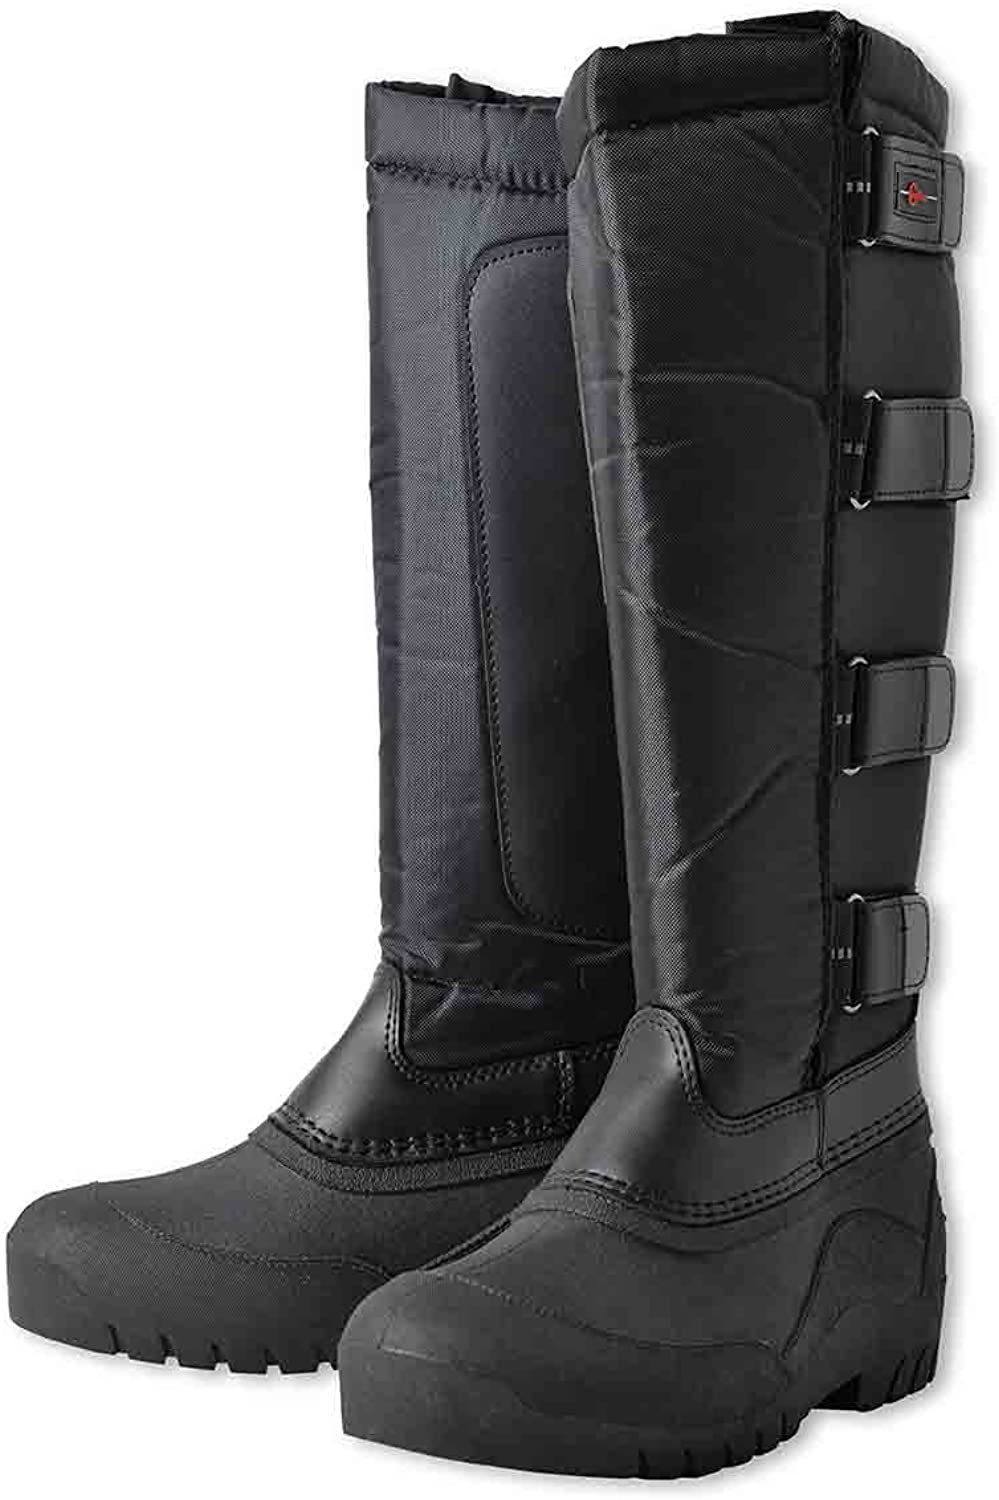 Covalliero Classic Black Thermal Riding Boots